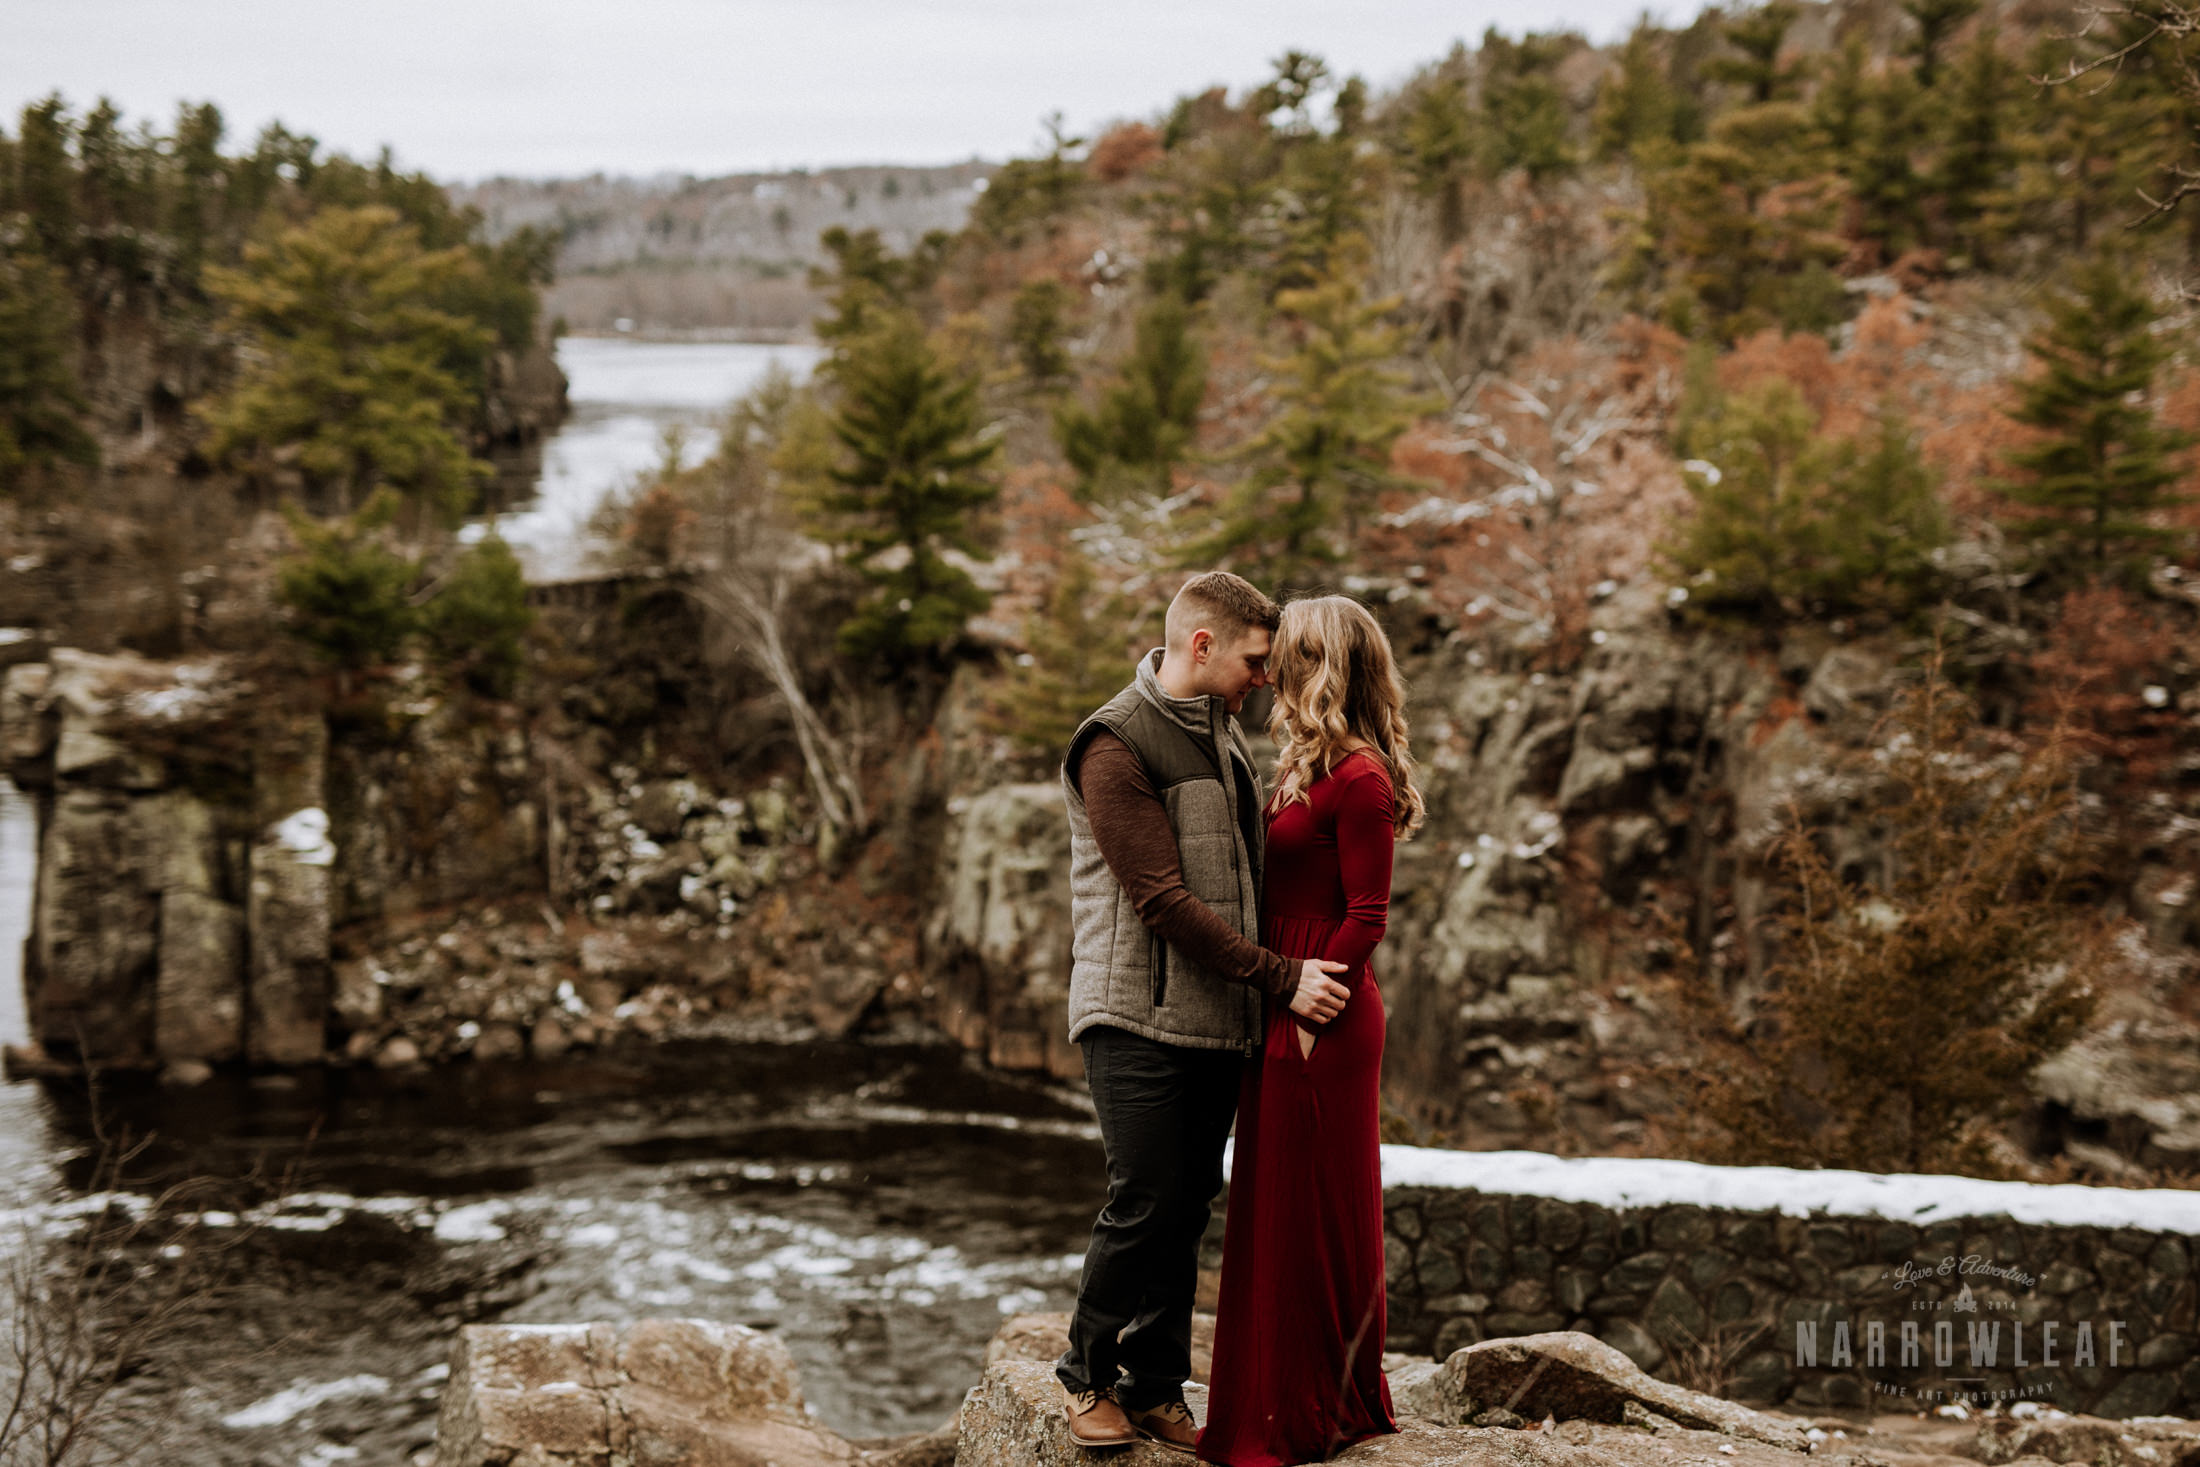 wisconsin-winter-adventure-engagement-interstate-park-bluffs-Narrowleaf_Love_and_Adventure_Photography-1620.jpg